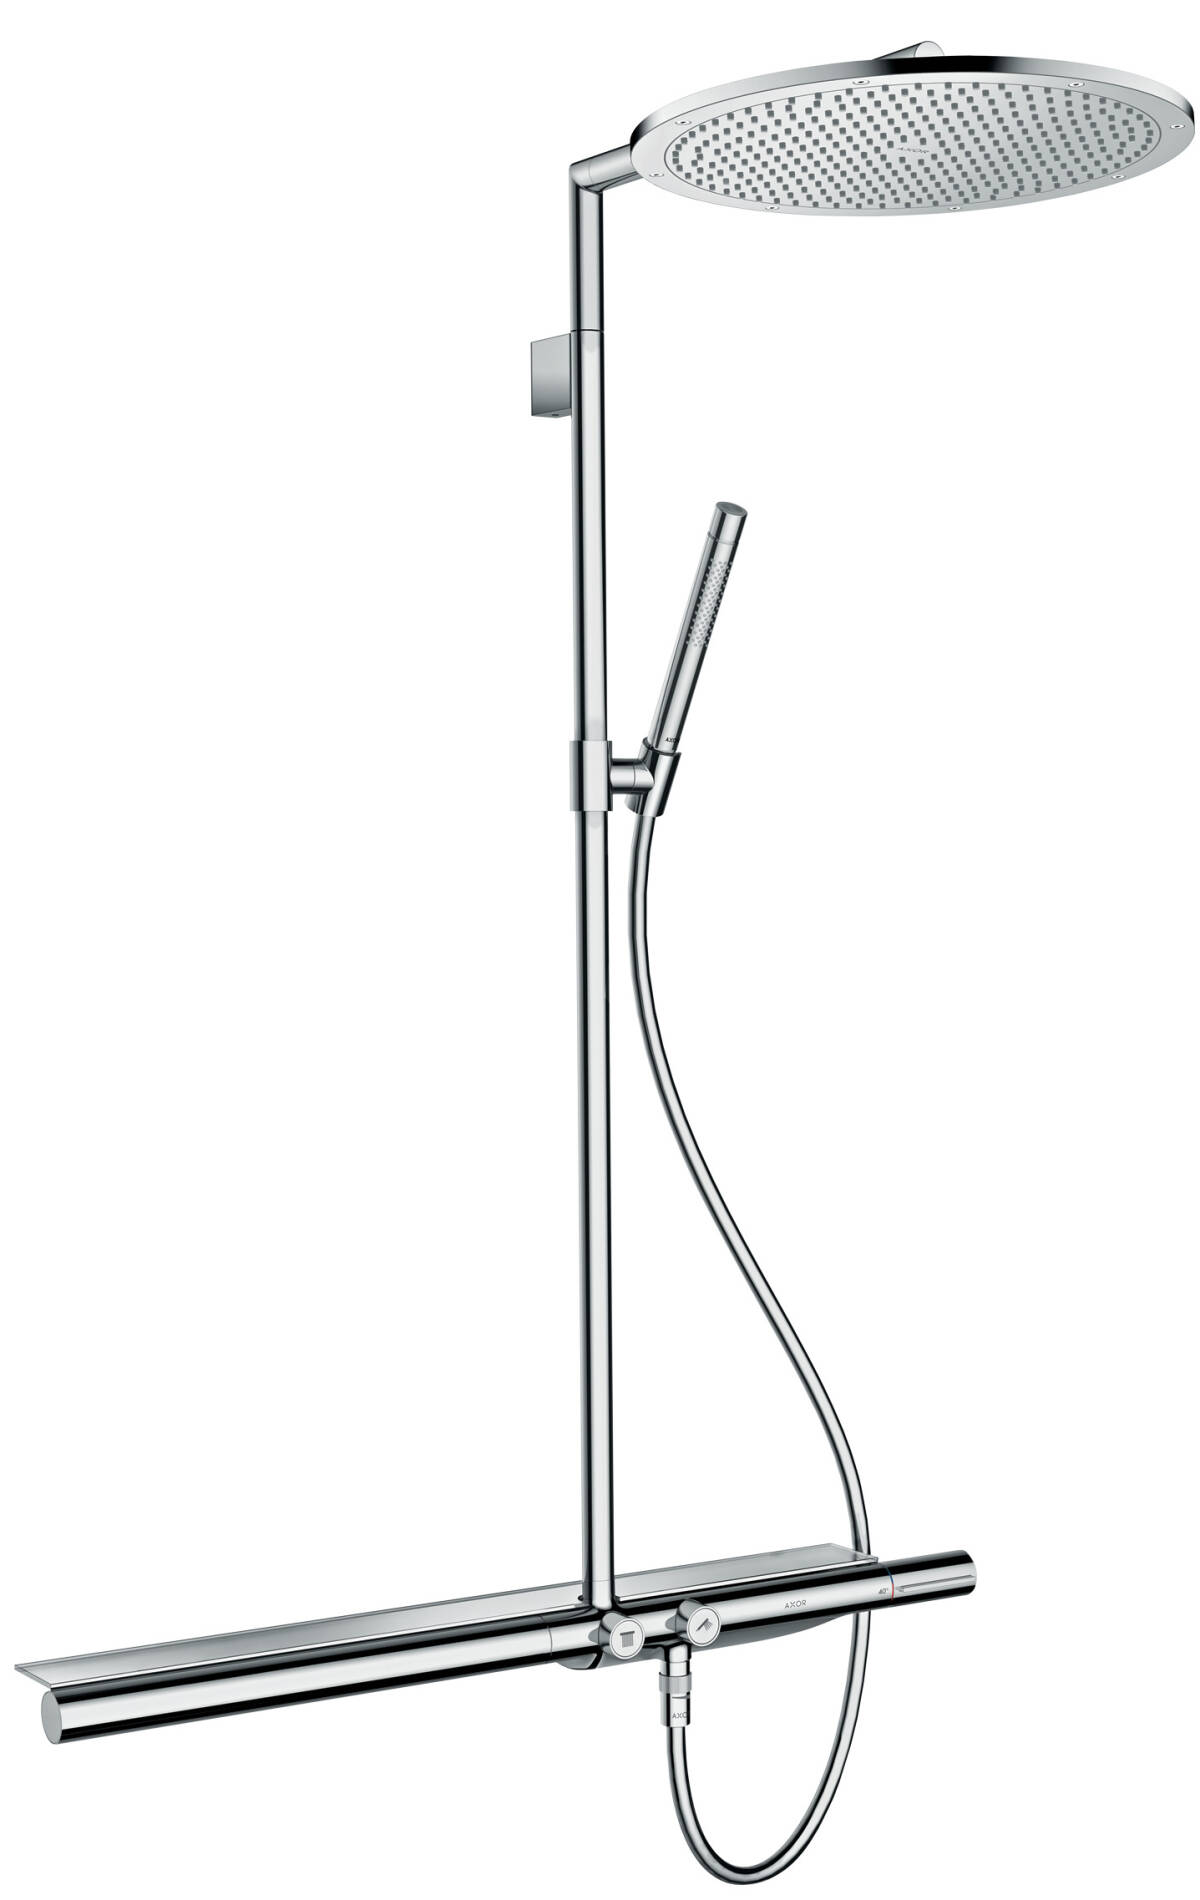 Showerpipe 800 with thermostatic mixer and overhead shower 350 1jet, Chrome, 27984000